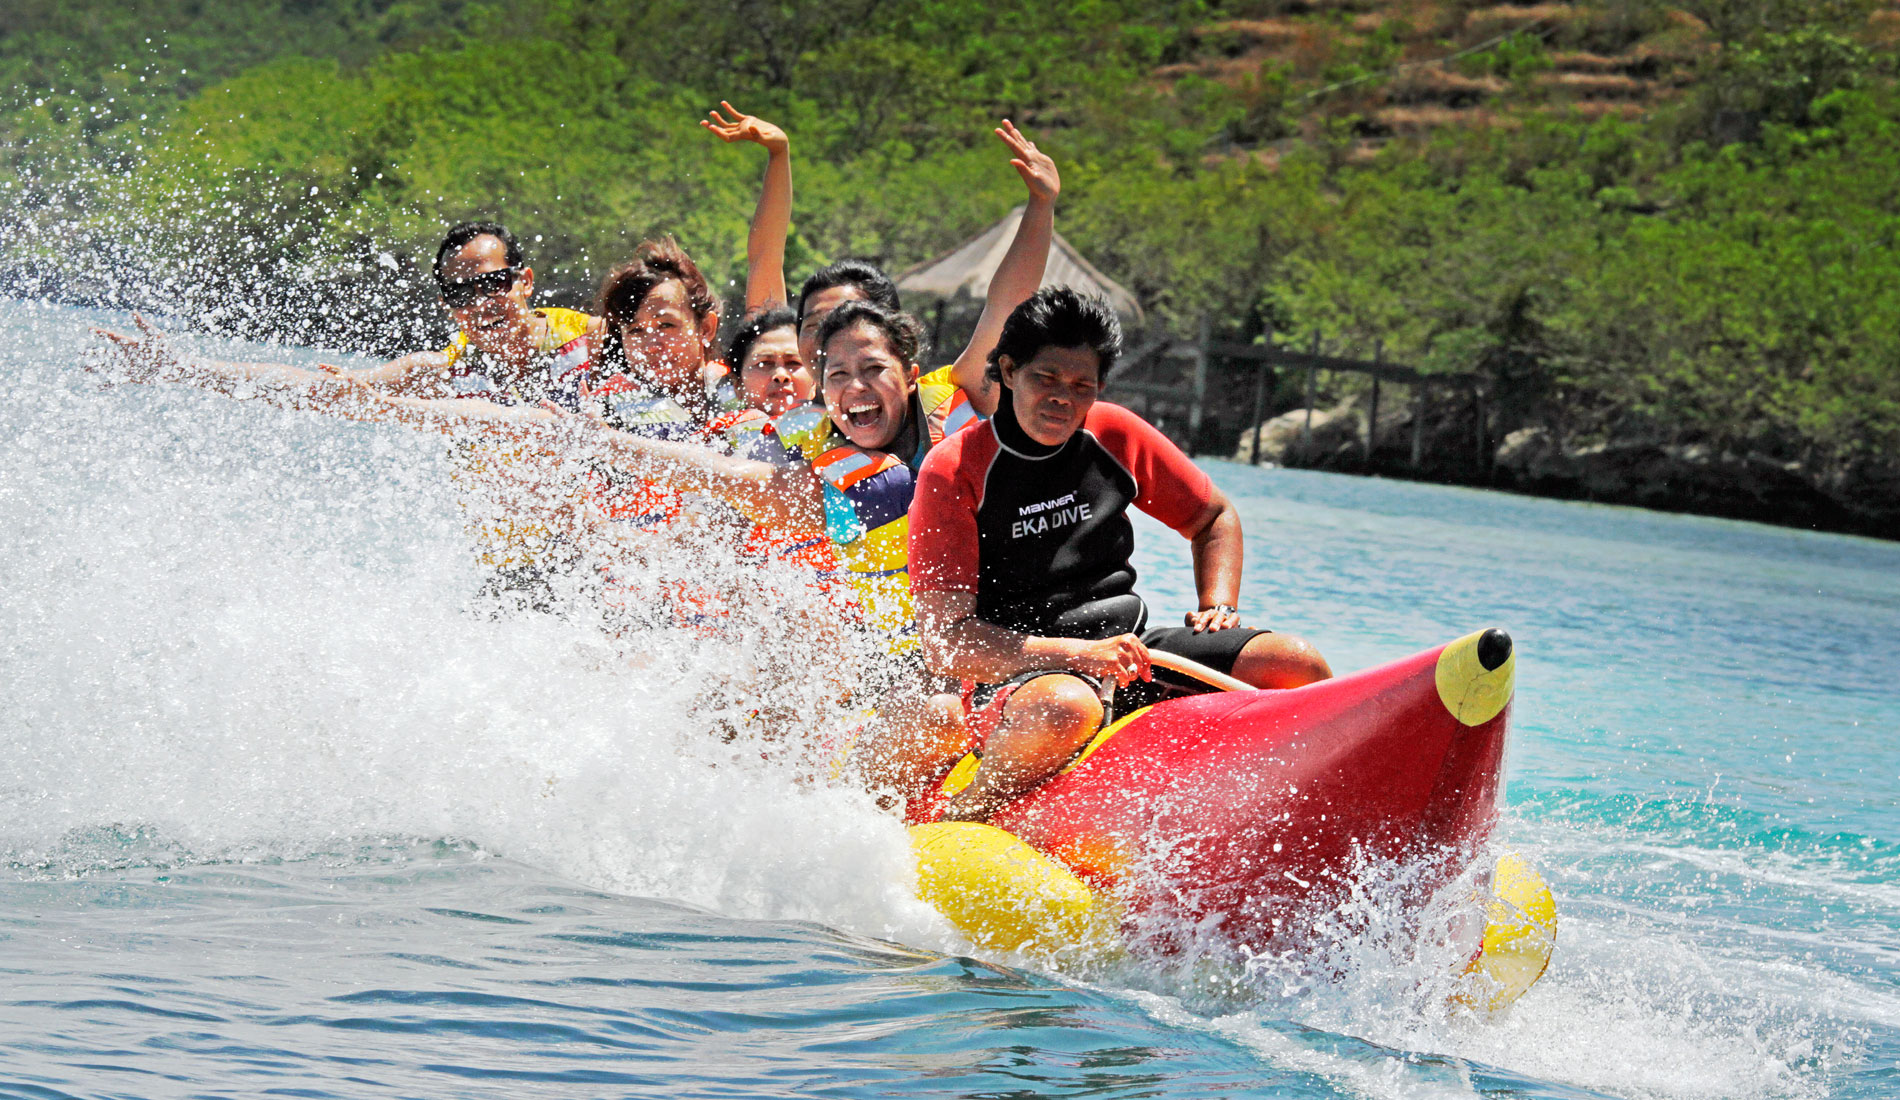 Banana Boat Ride - Things To Do in Bali Tours Activities